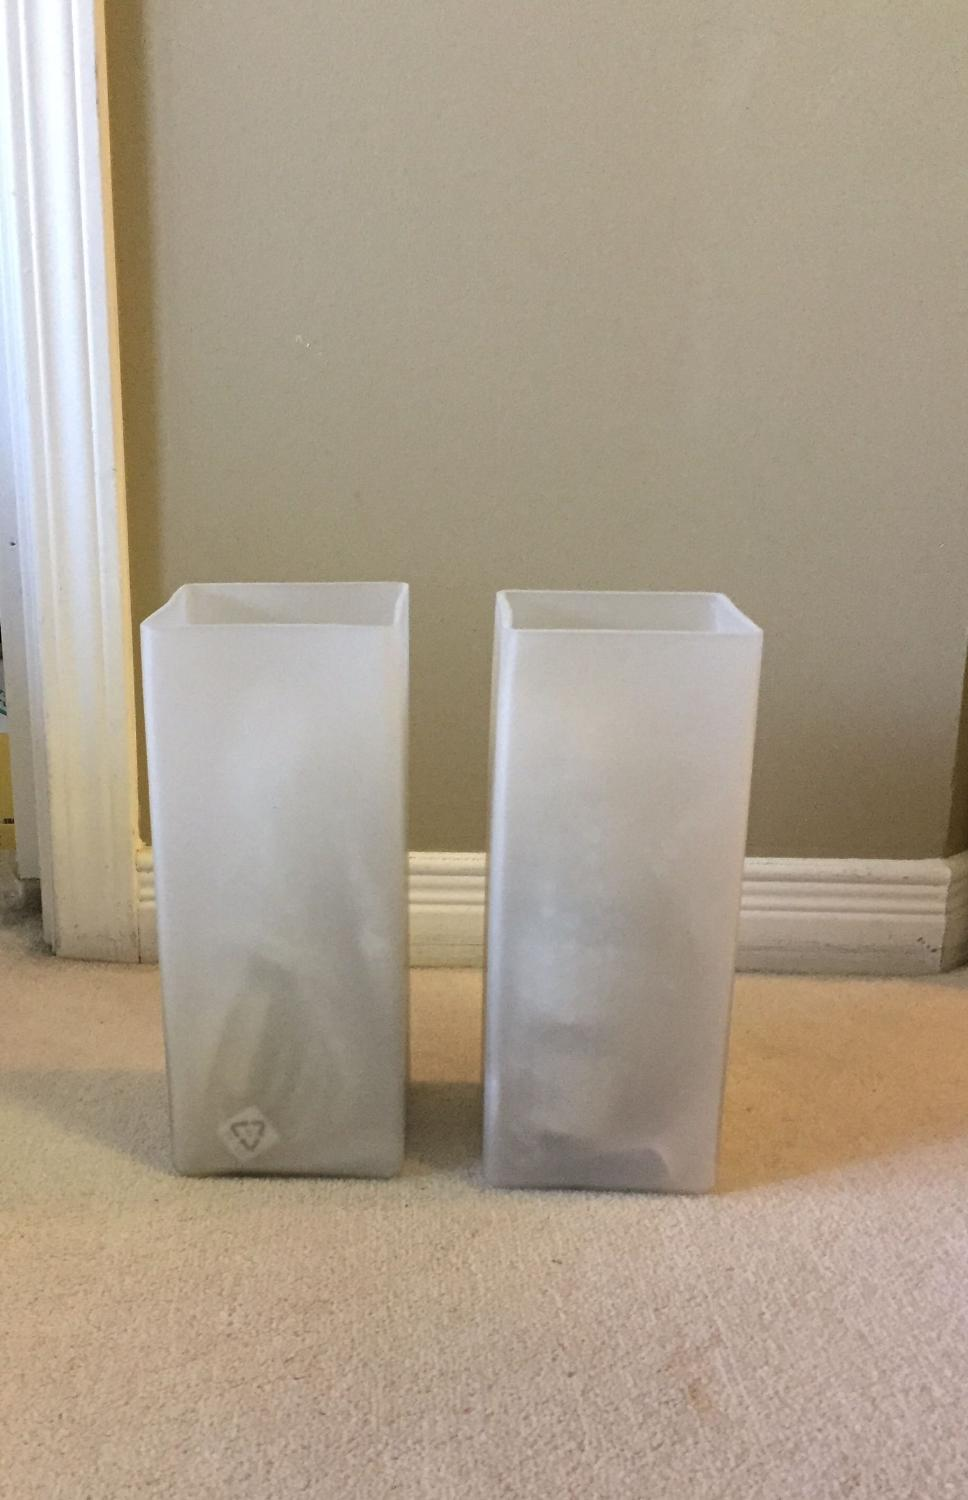 Ikea grn set of 2 frosted glass table lamps best inspiration find more ikea grono lamps set of 2 for sale at up to 90 geotapseo Gallery